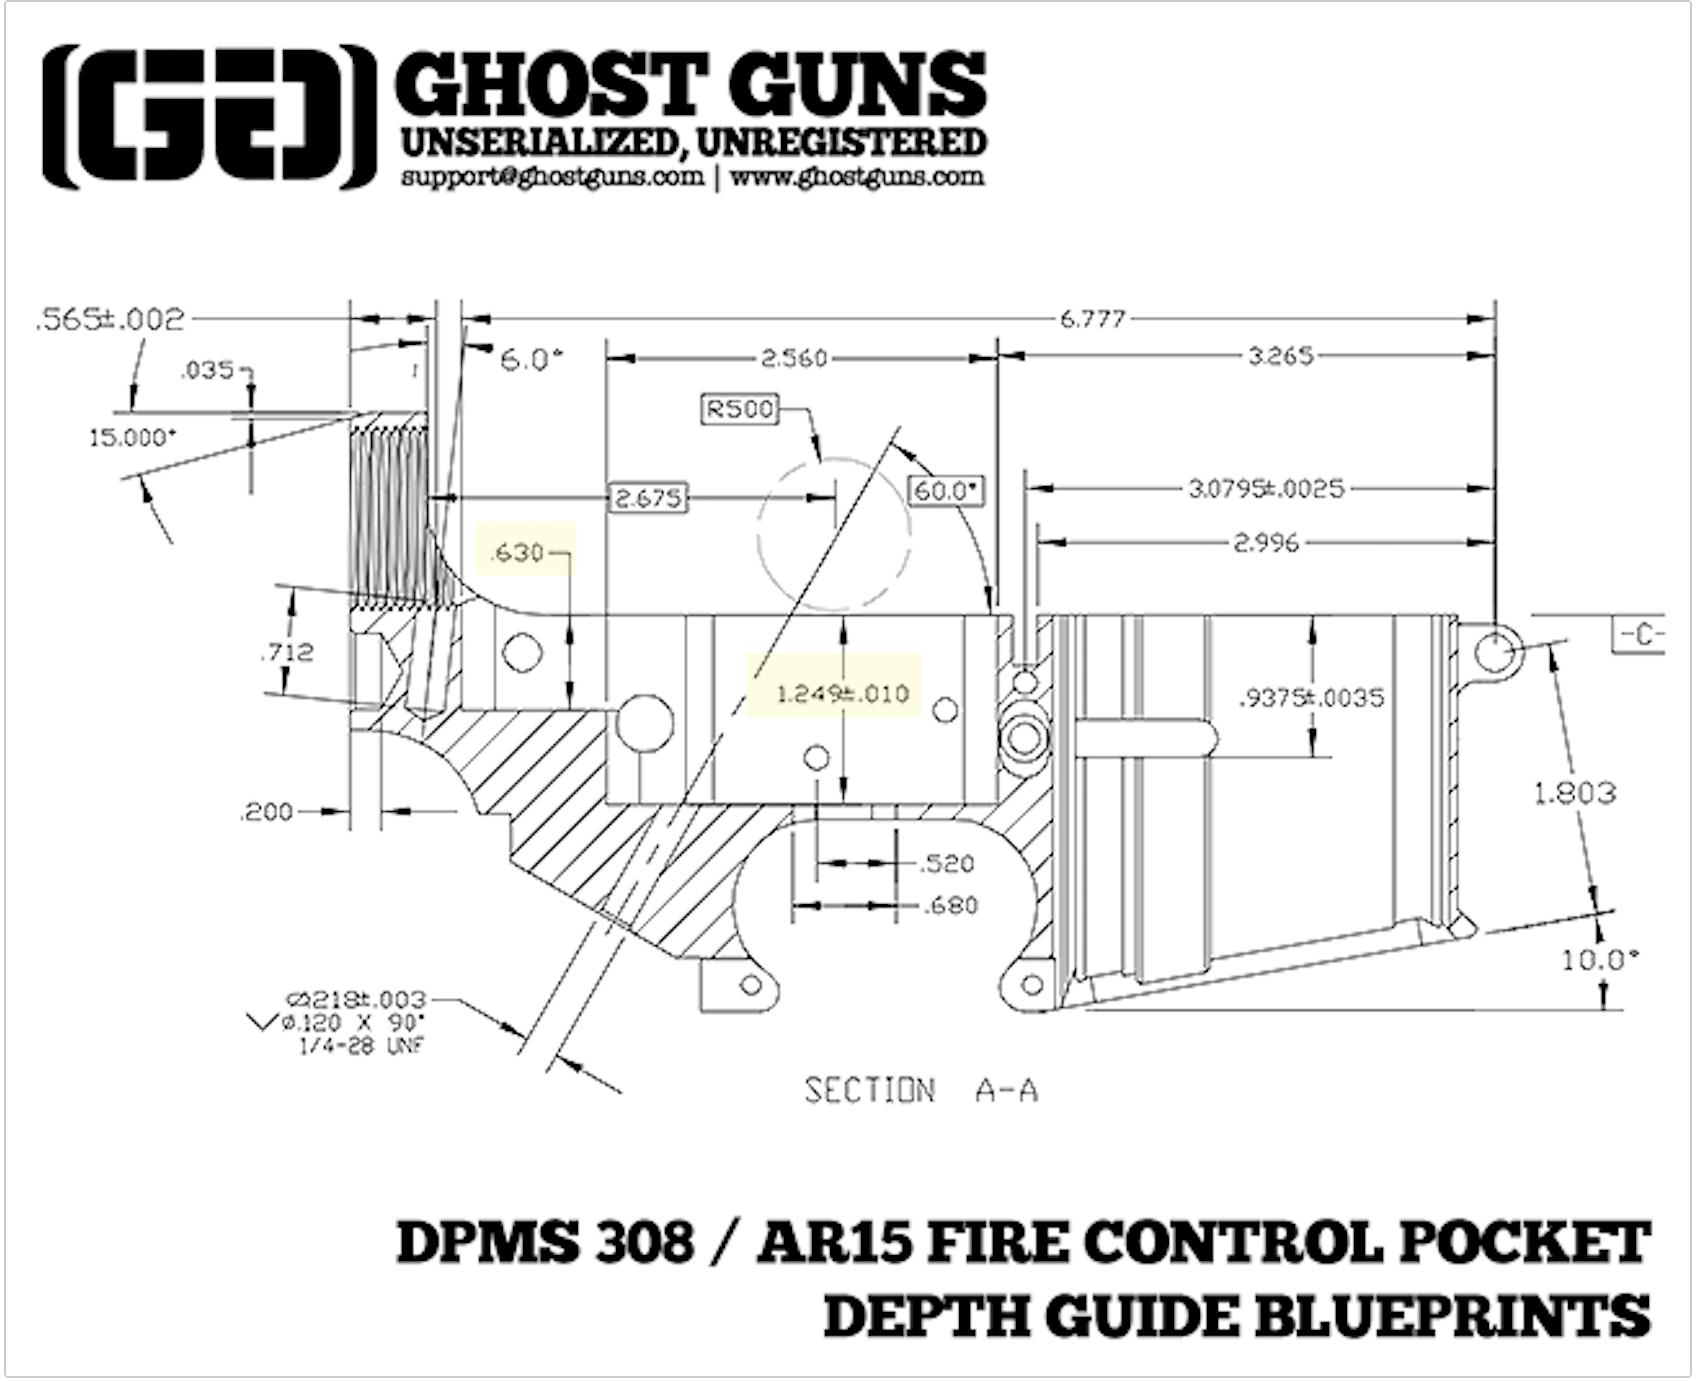 Dpms 308 Blueprints For 308 80 Lower Receiver Builds